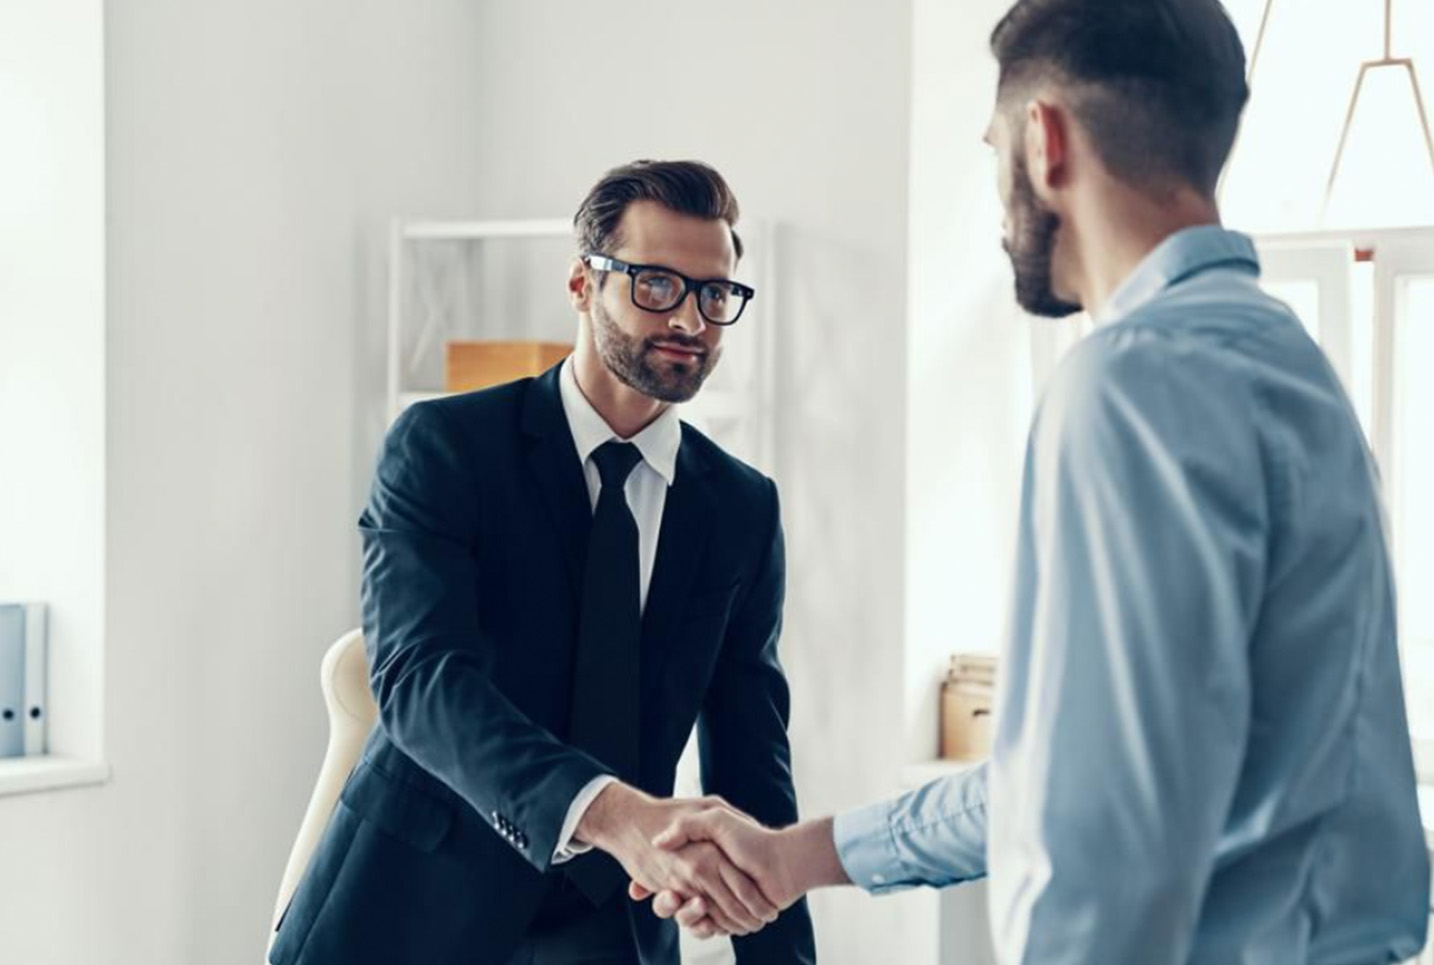 New Customers Versus Repeat Clients: Where Should Business Owners Focus Their Efforts?